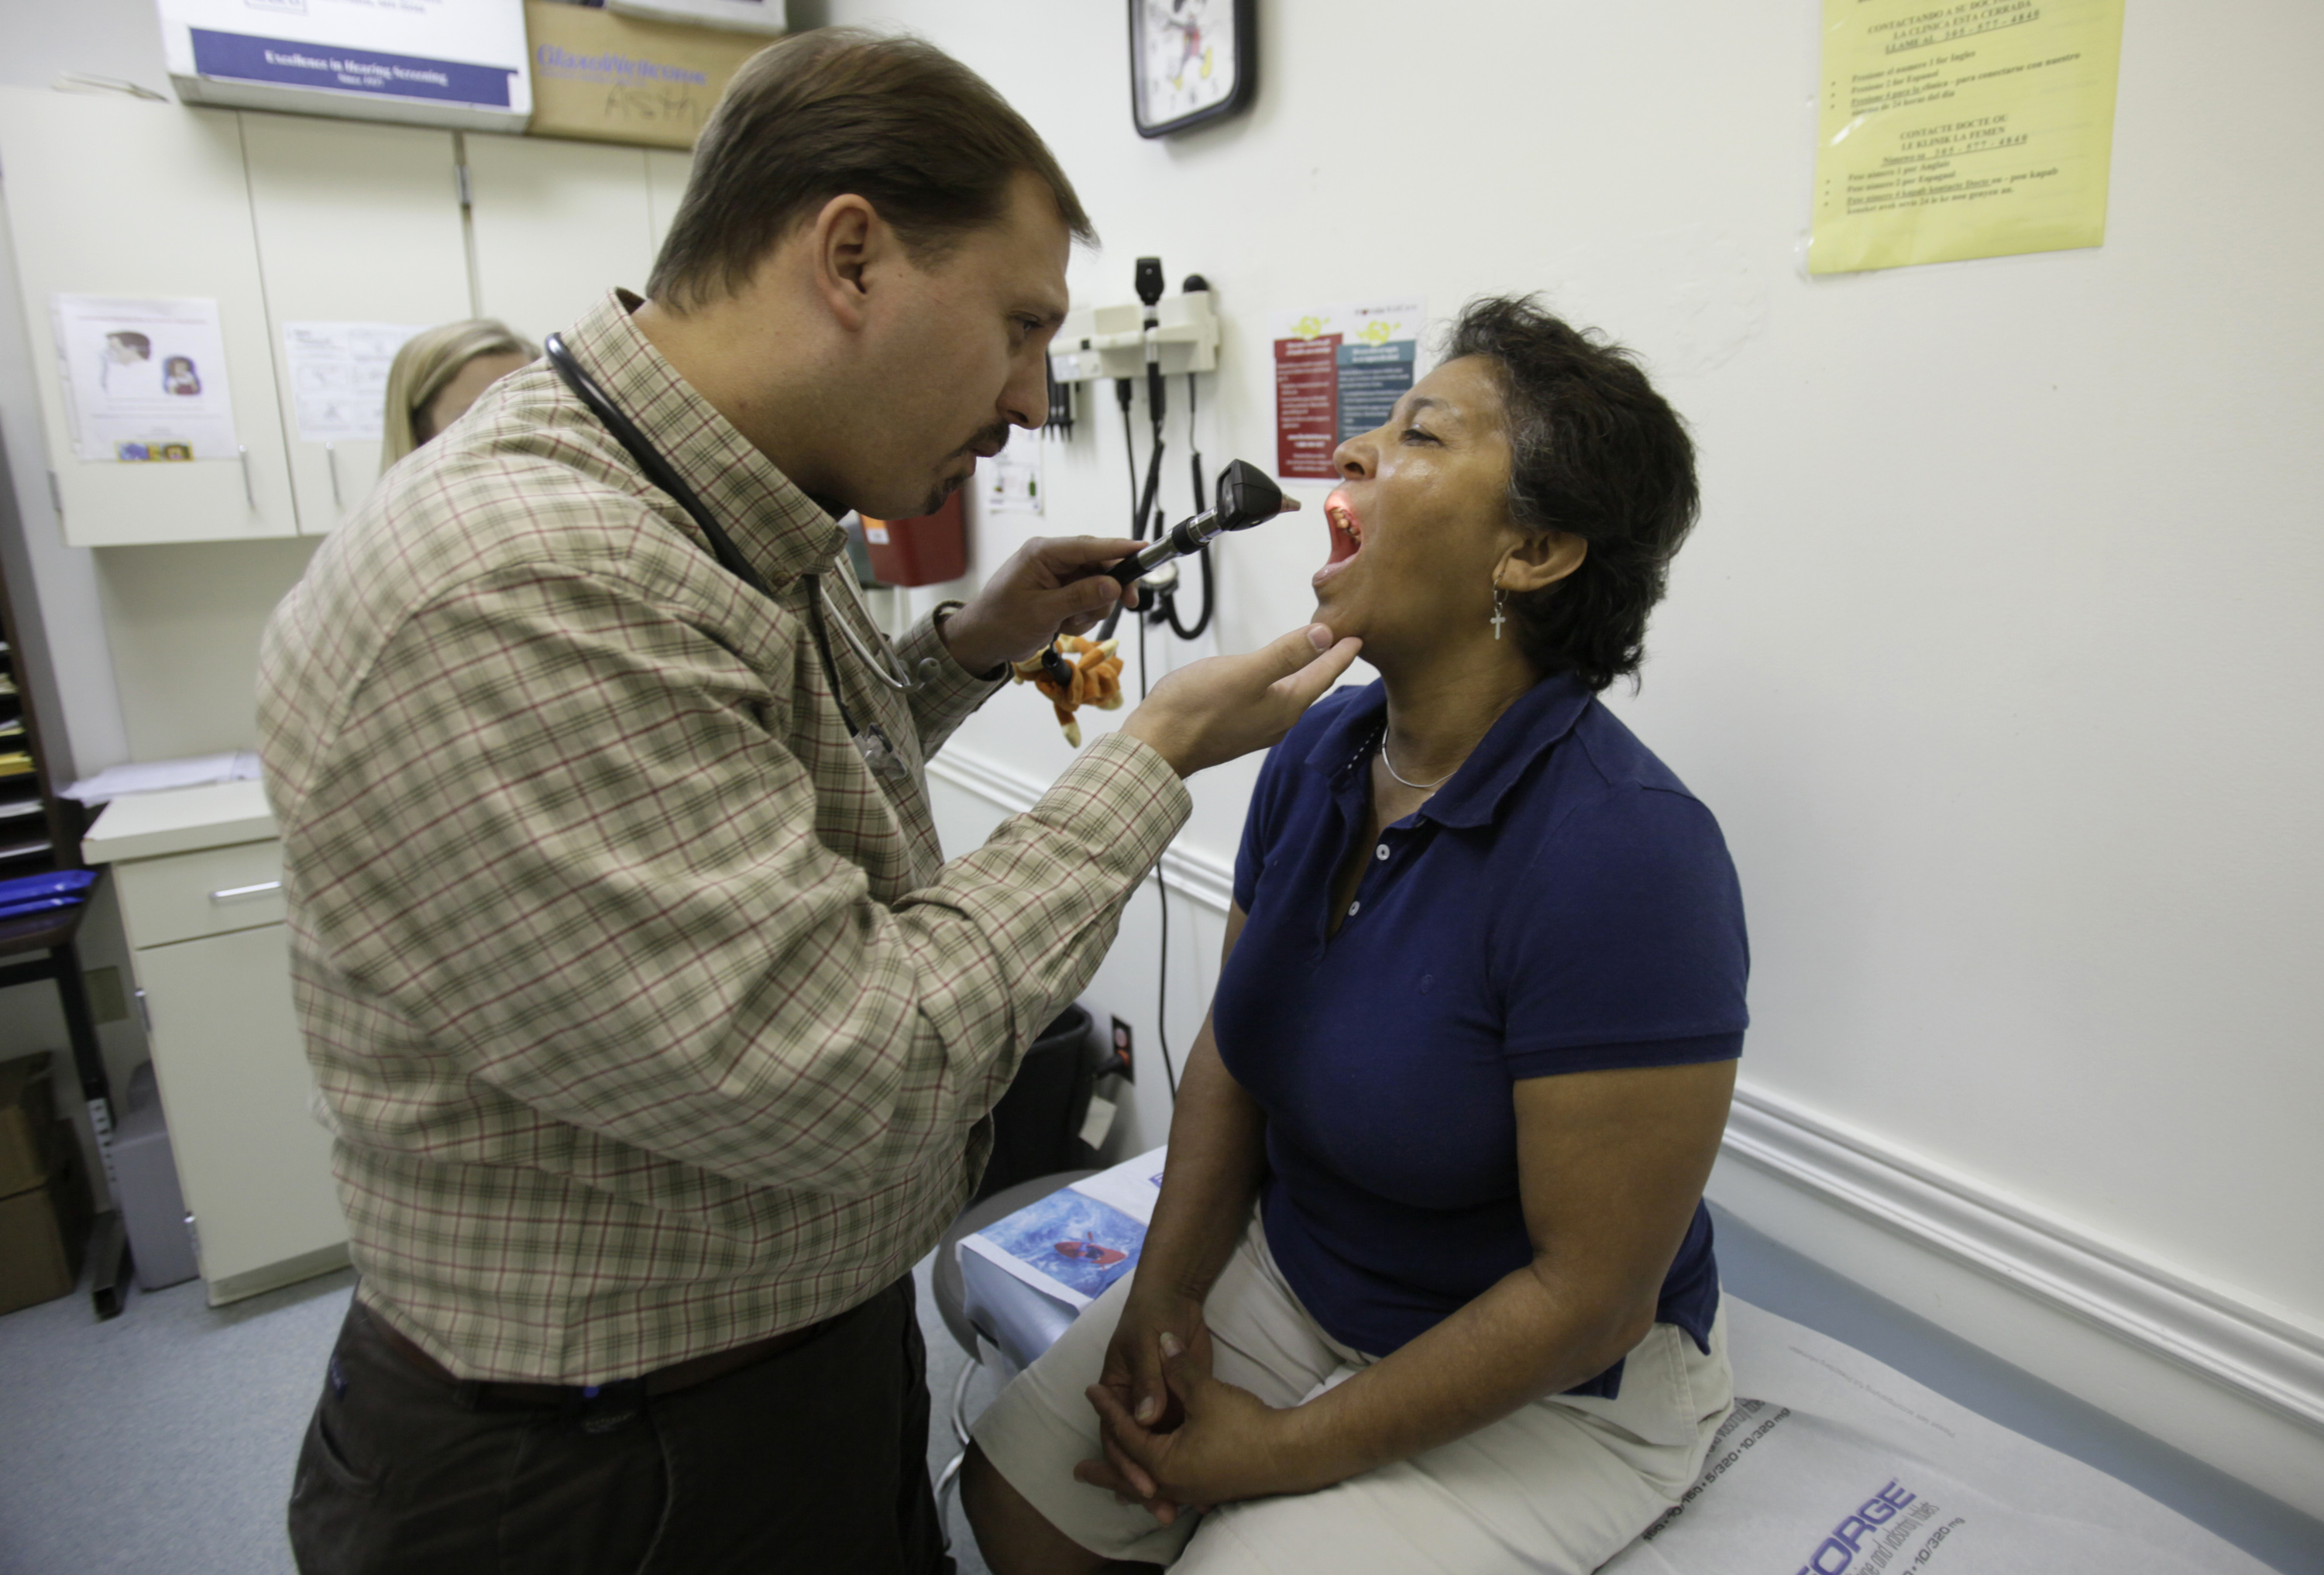 Dr. Javier Hiriart, left, examines a patient during a medical checkup at Camillus Health Concern in Miami on Sept. 8, 2009.(Lynne Sladky/AP)